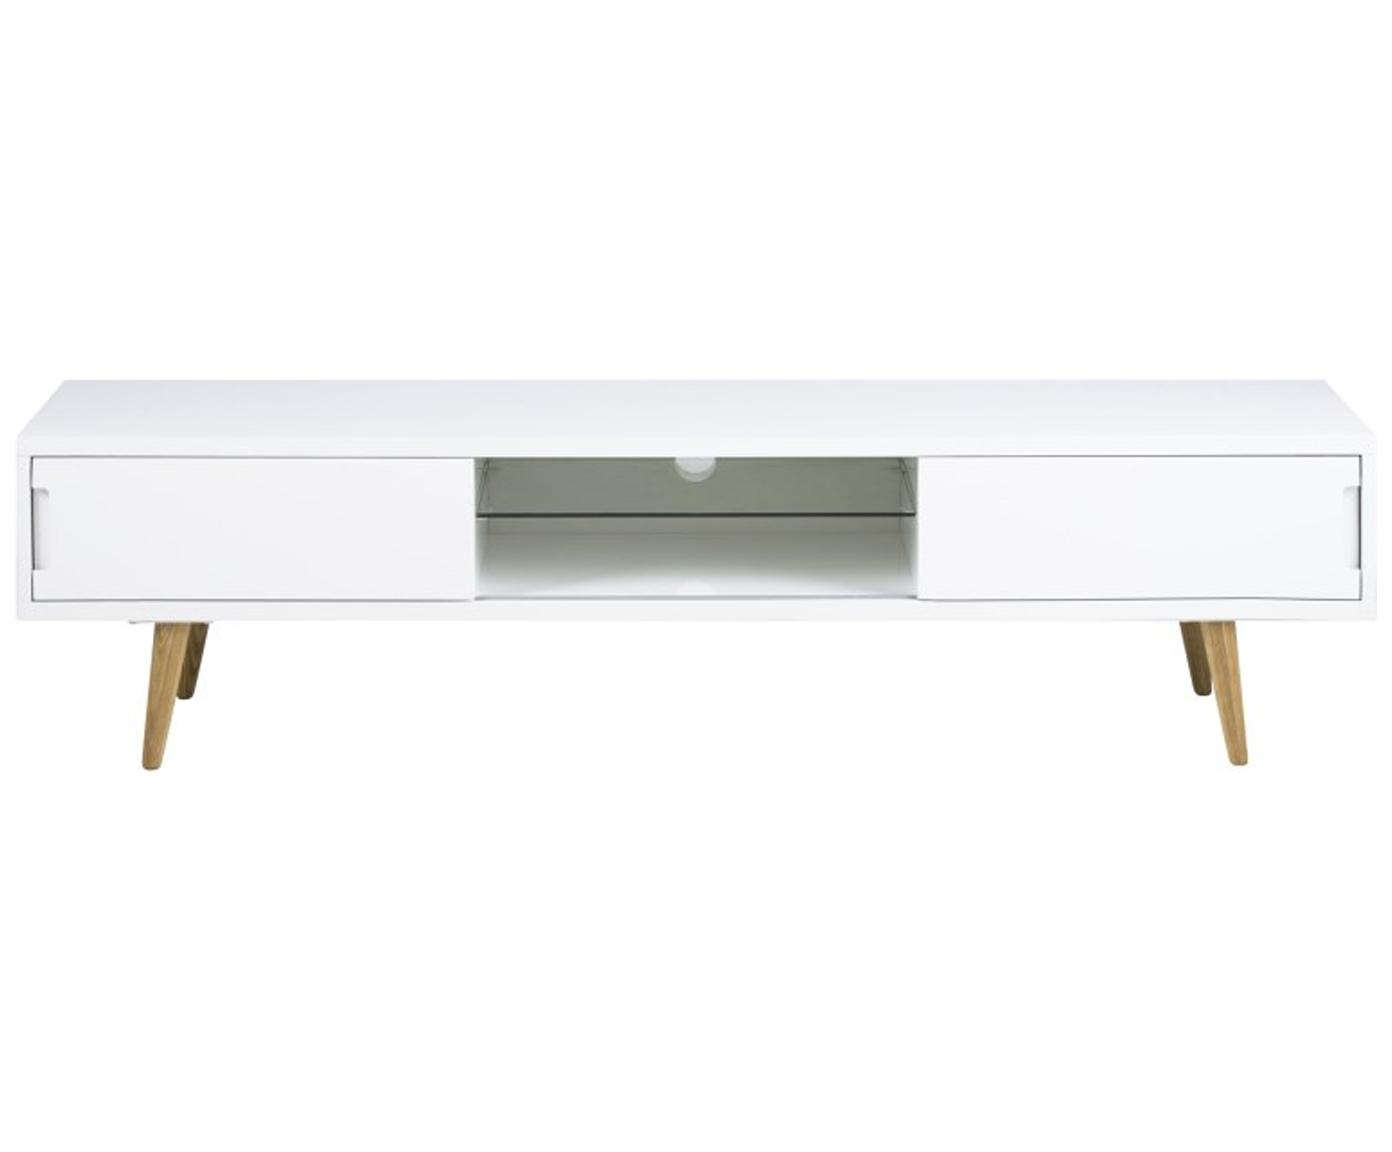 Tv-meubel Cassie in wit hoogglans, Poten: massief en geolied essenh, Plank: glas, Wit, bruin, 180 x 46 cm